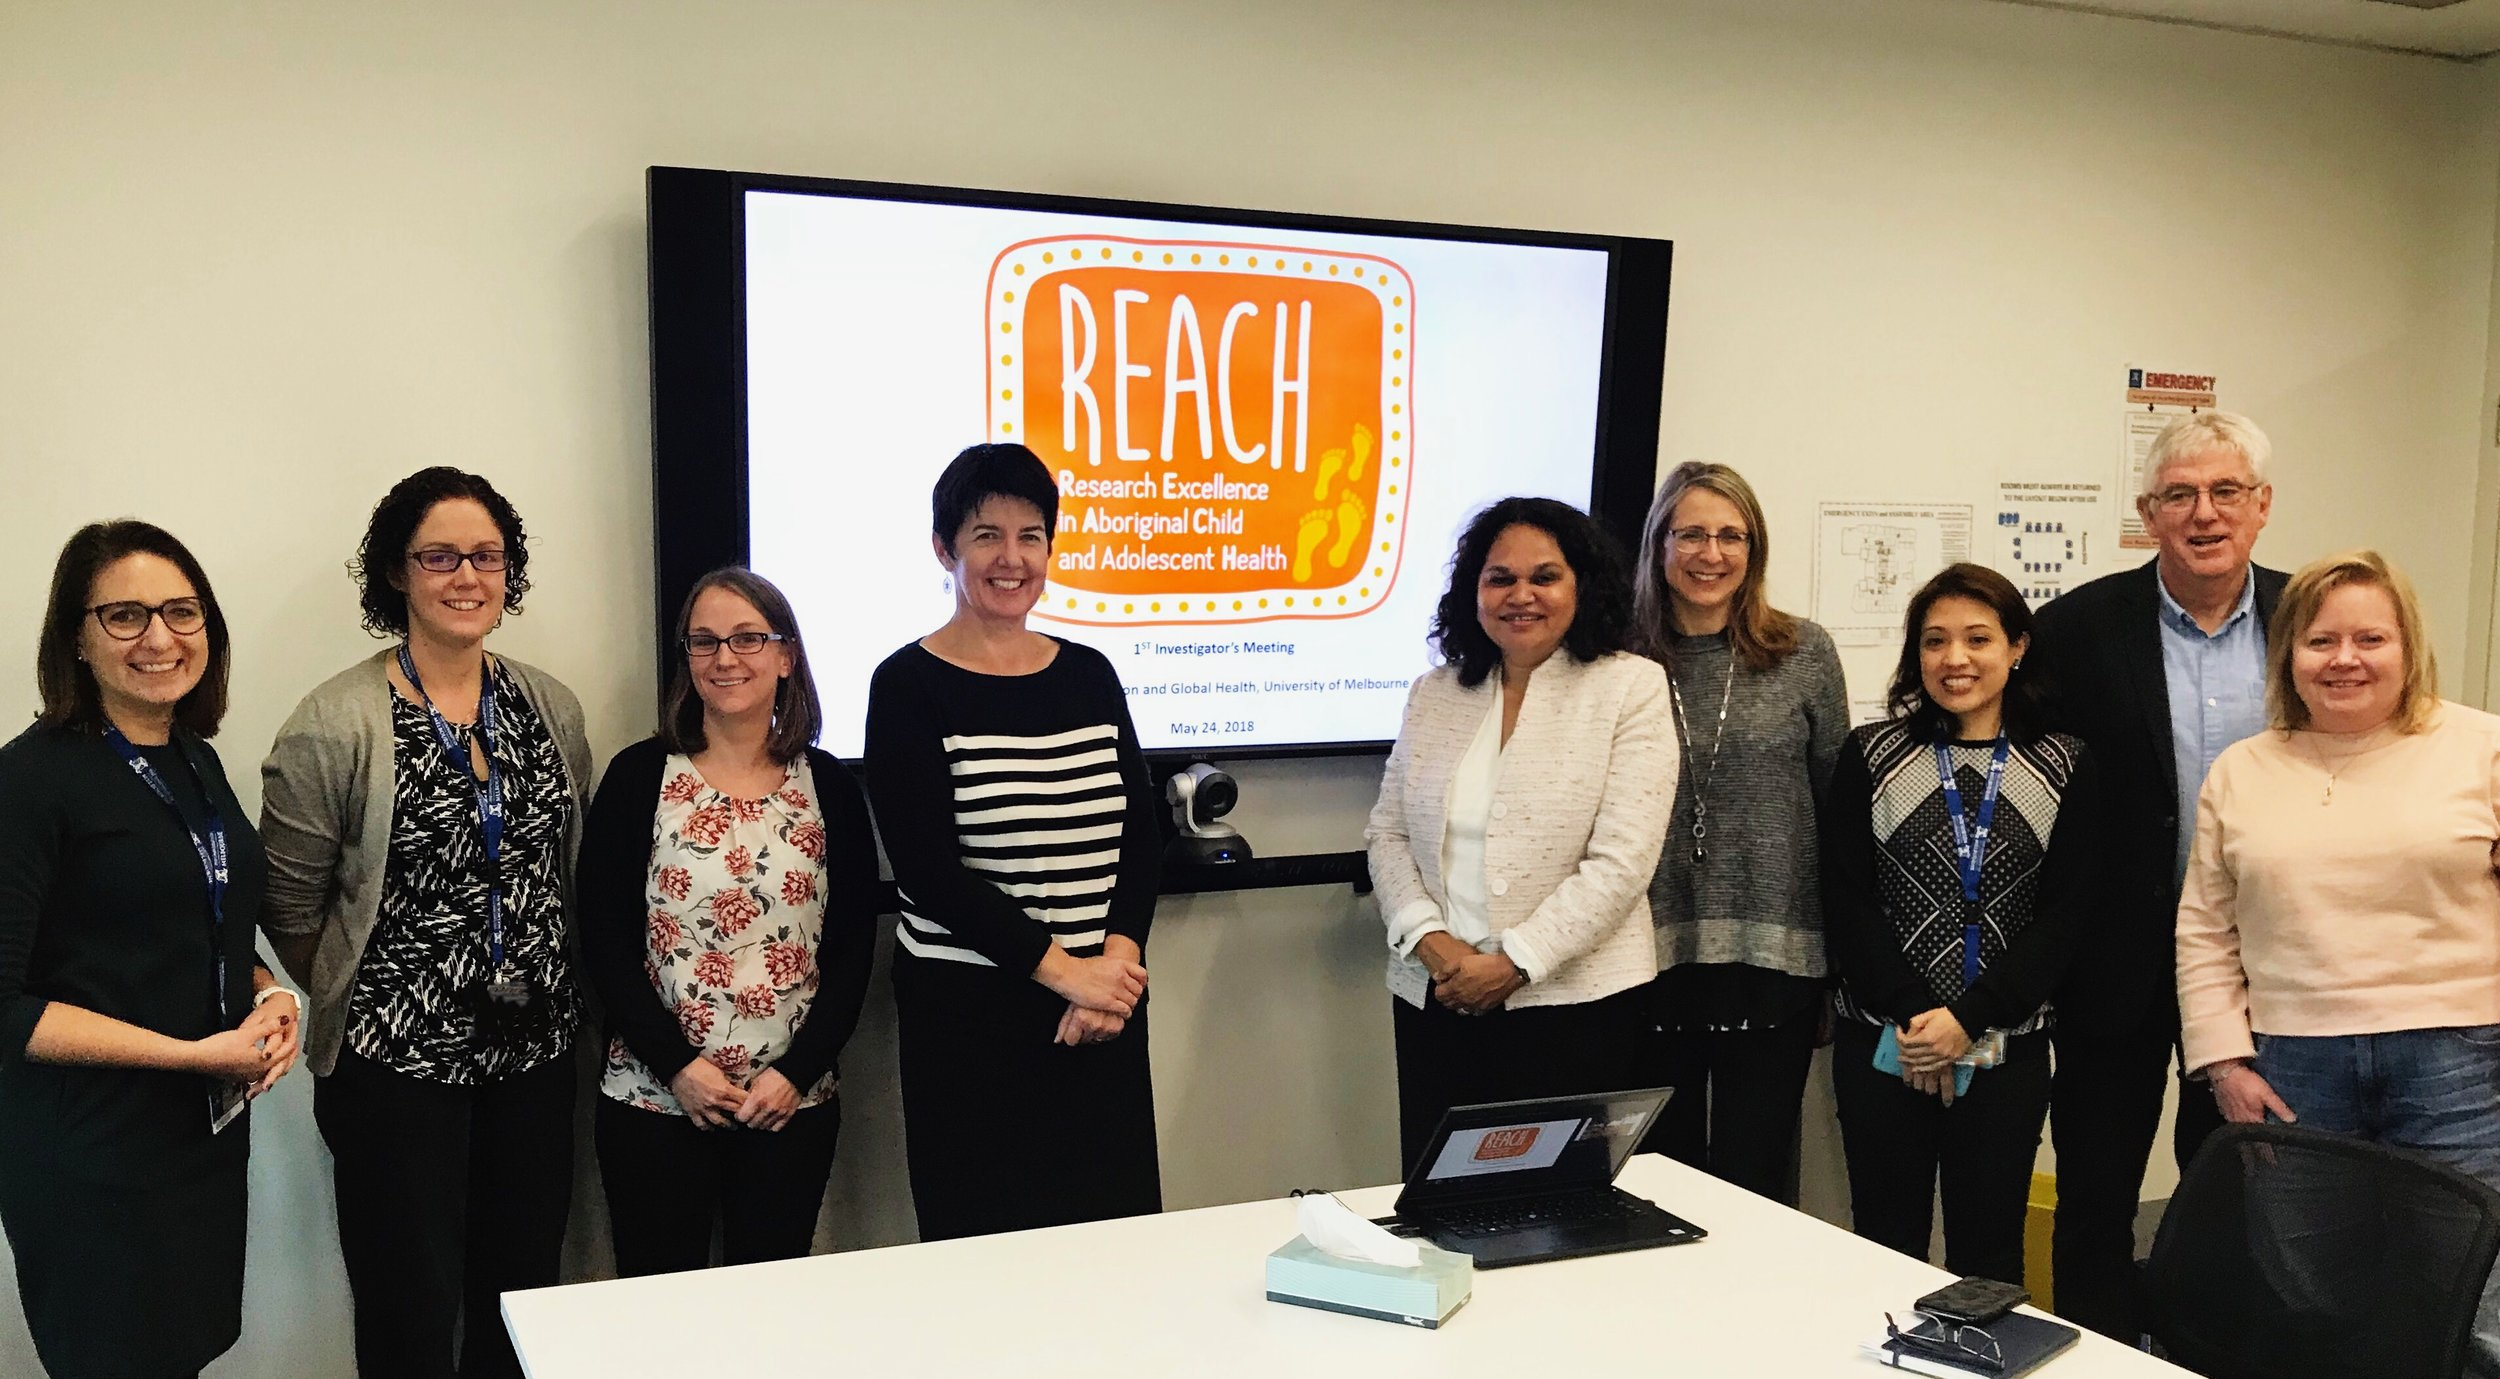 About - CRE REACH is an NHMRC funded Centre of Research Excellence led by Professor Sandra Eades. Awarded in 2017 the five year work program willimprove Aboriginal child and adolescent health through Aboriginal leadership and collaborative research teams. Bringing together a diverse group of leading public health researchers across more than a dozen separate research projects and four priority themes CRE REACH is building the future Aboriginal research workforce while focusing on the policy sensitive risk factors for children and adolescents.